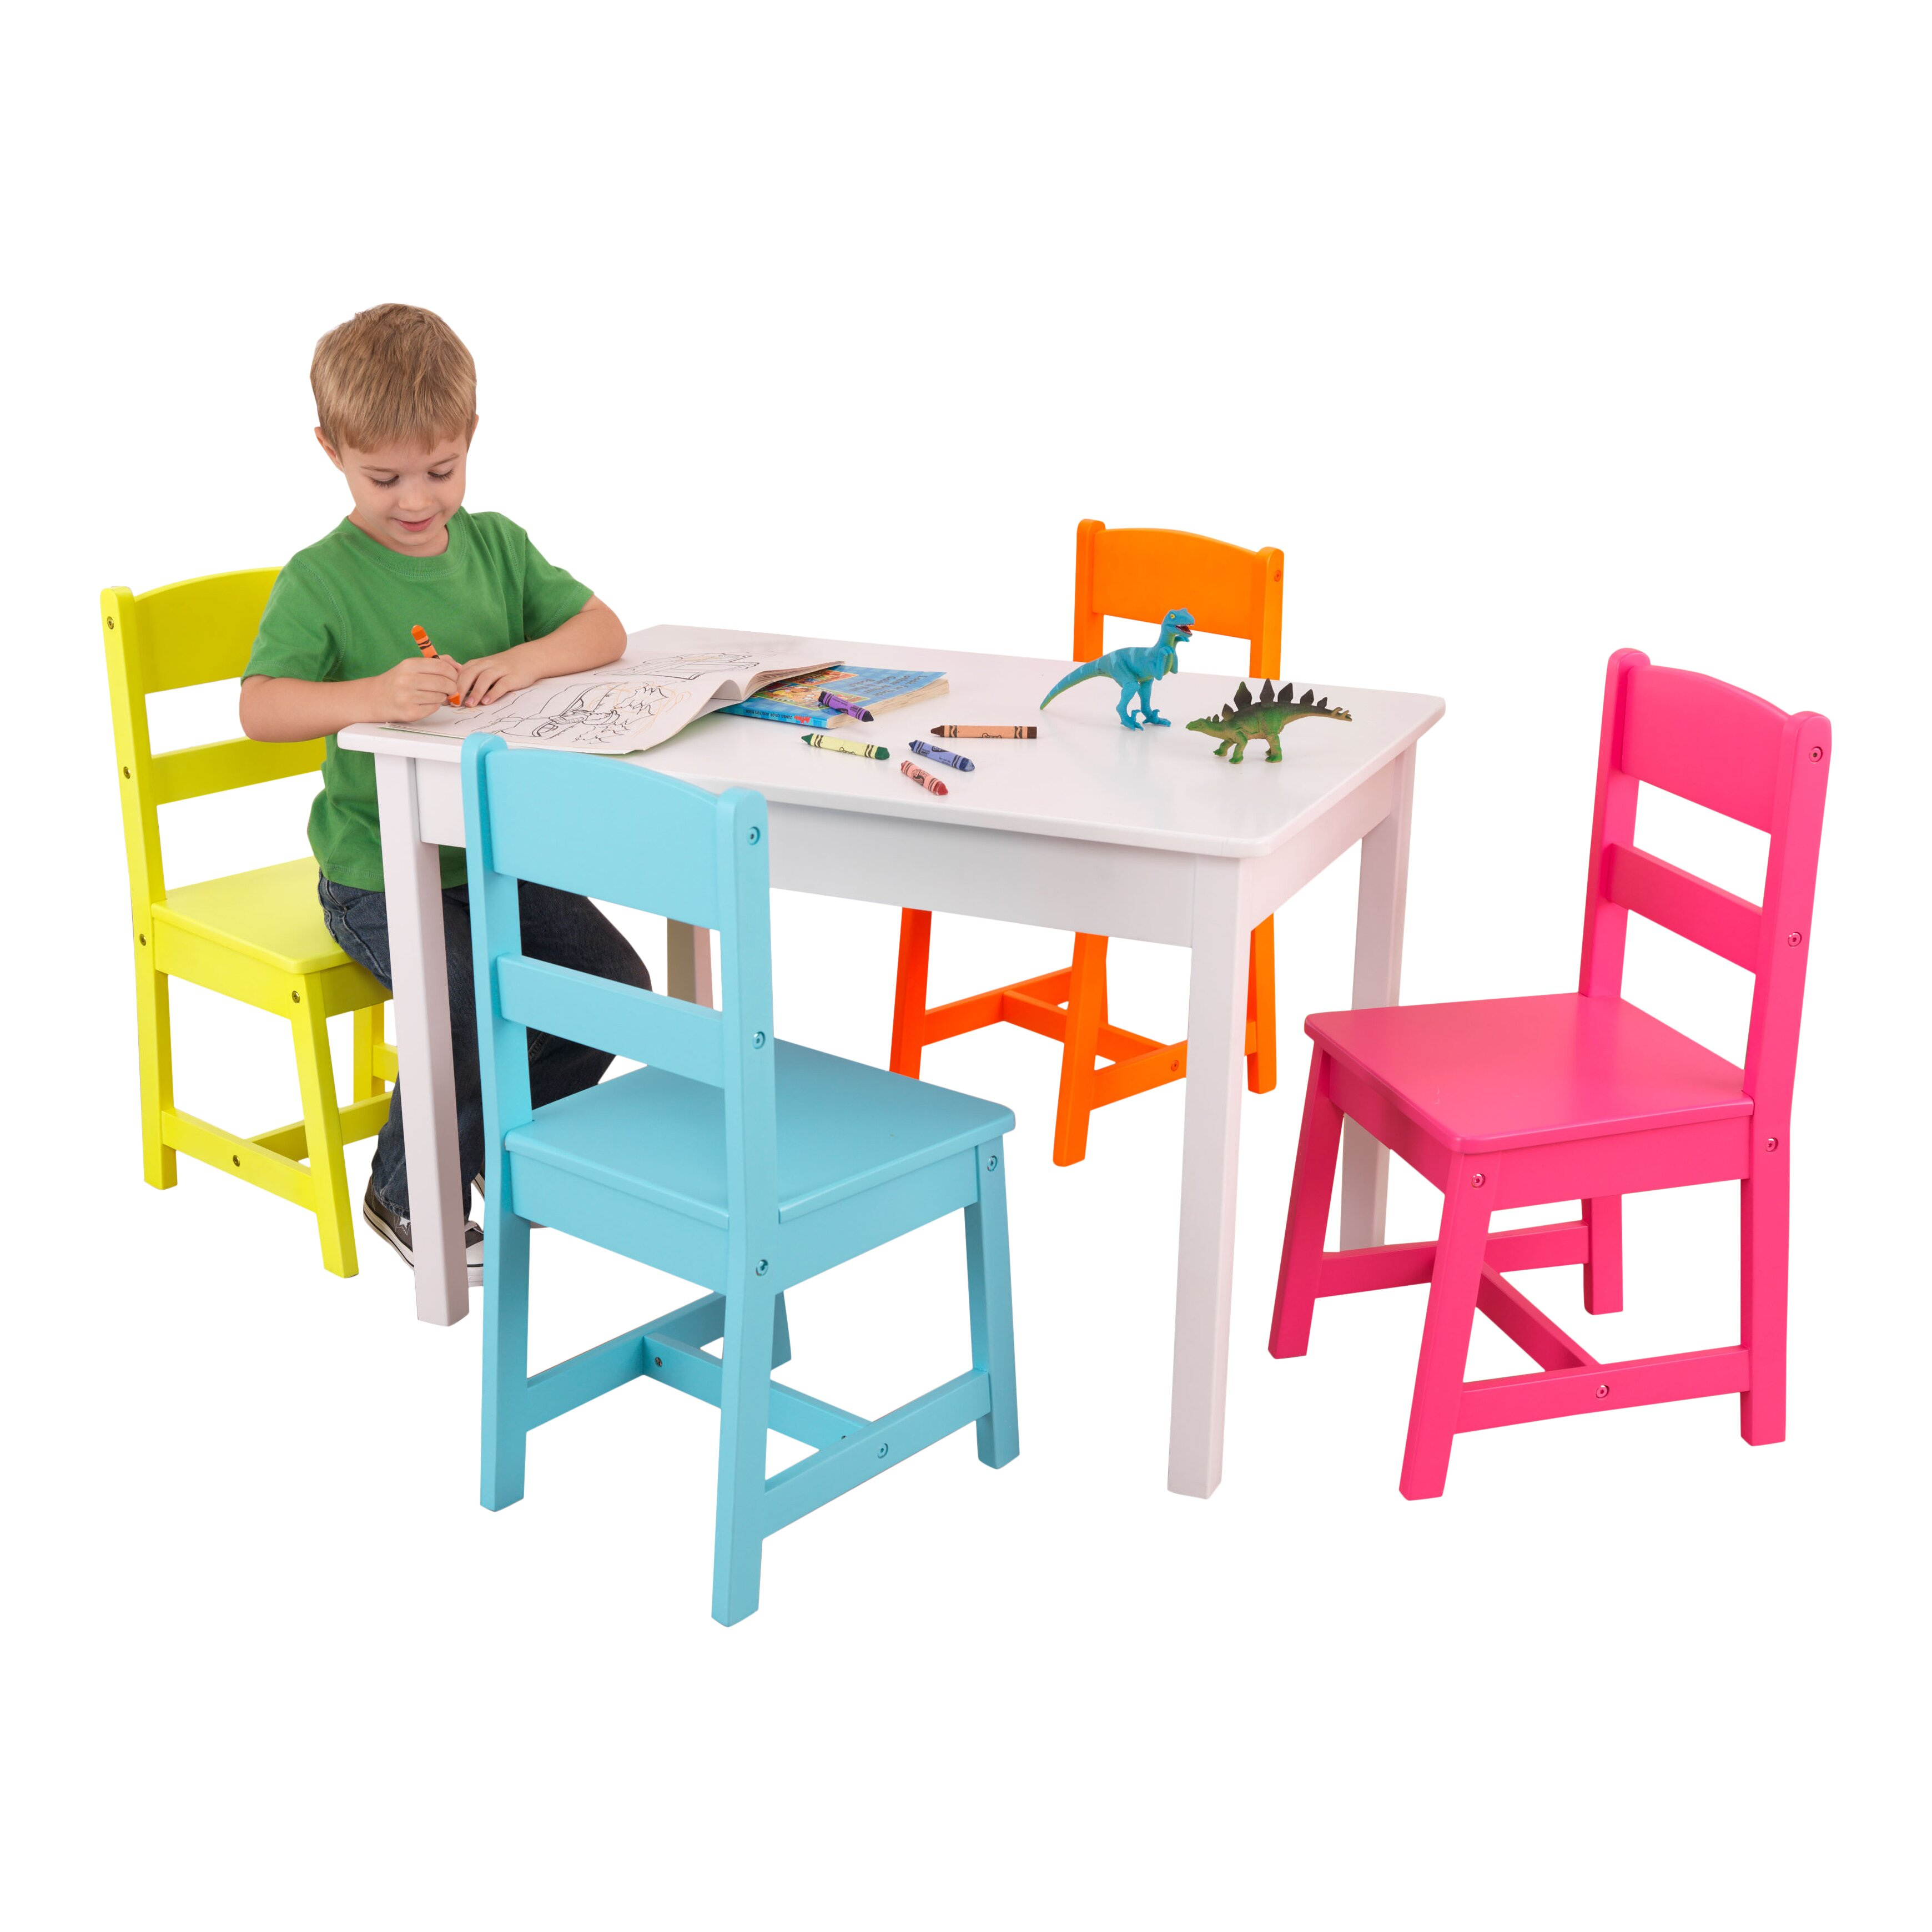 kids chair with table – Chair and Table for Kids